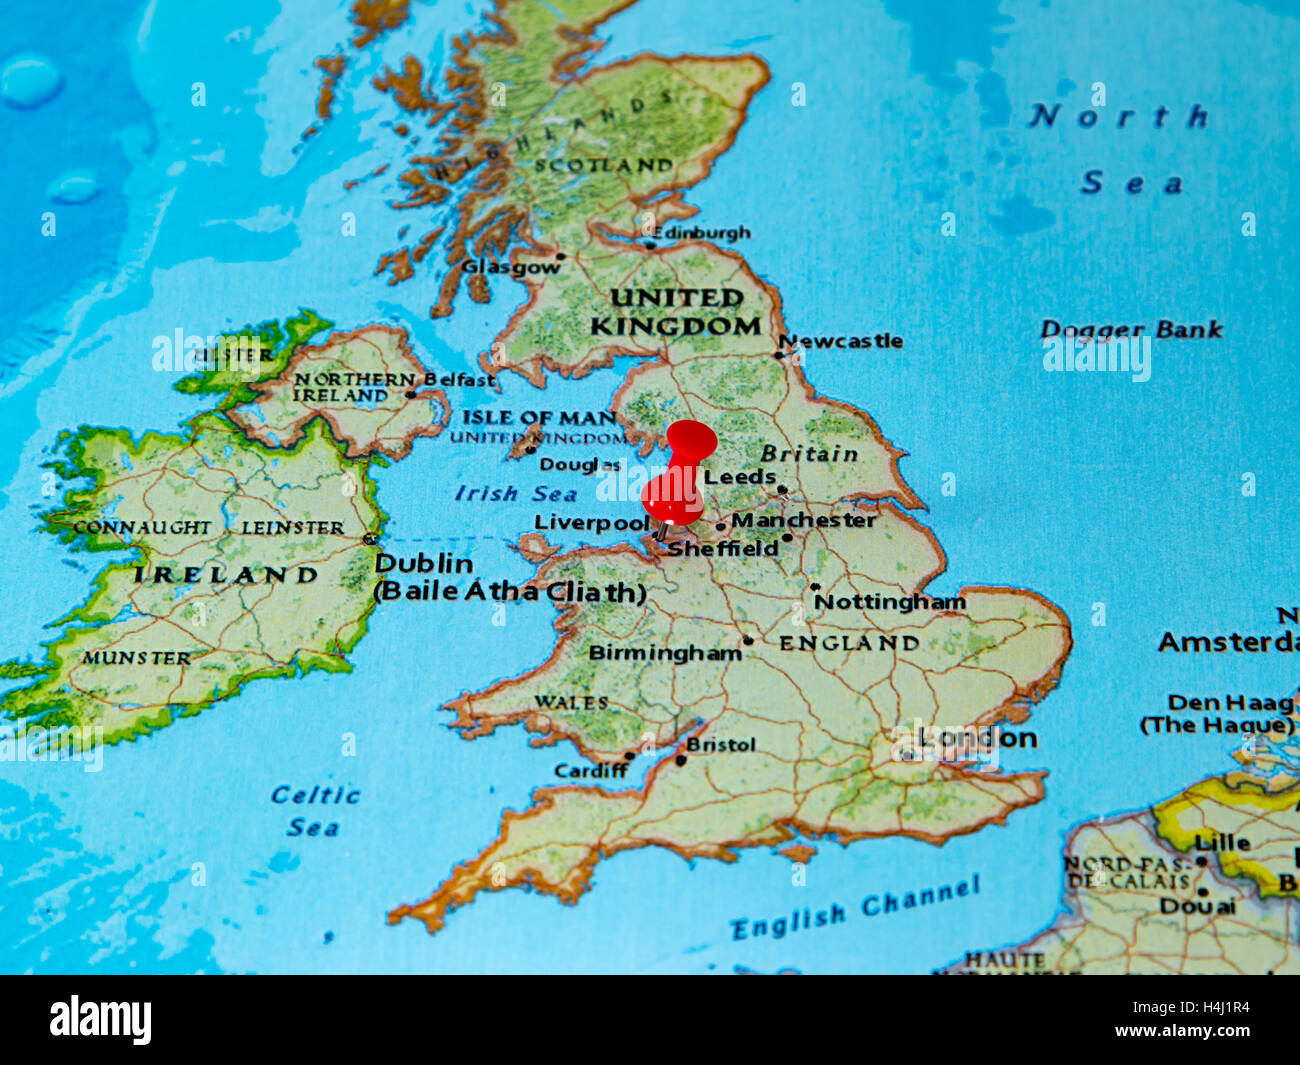 Liverpool, U.K. pinned on a map of Europe Stock Photo: 123327768